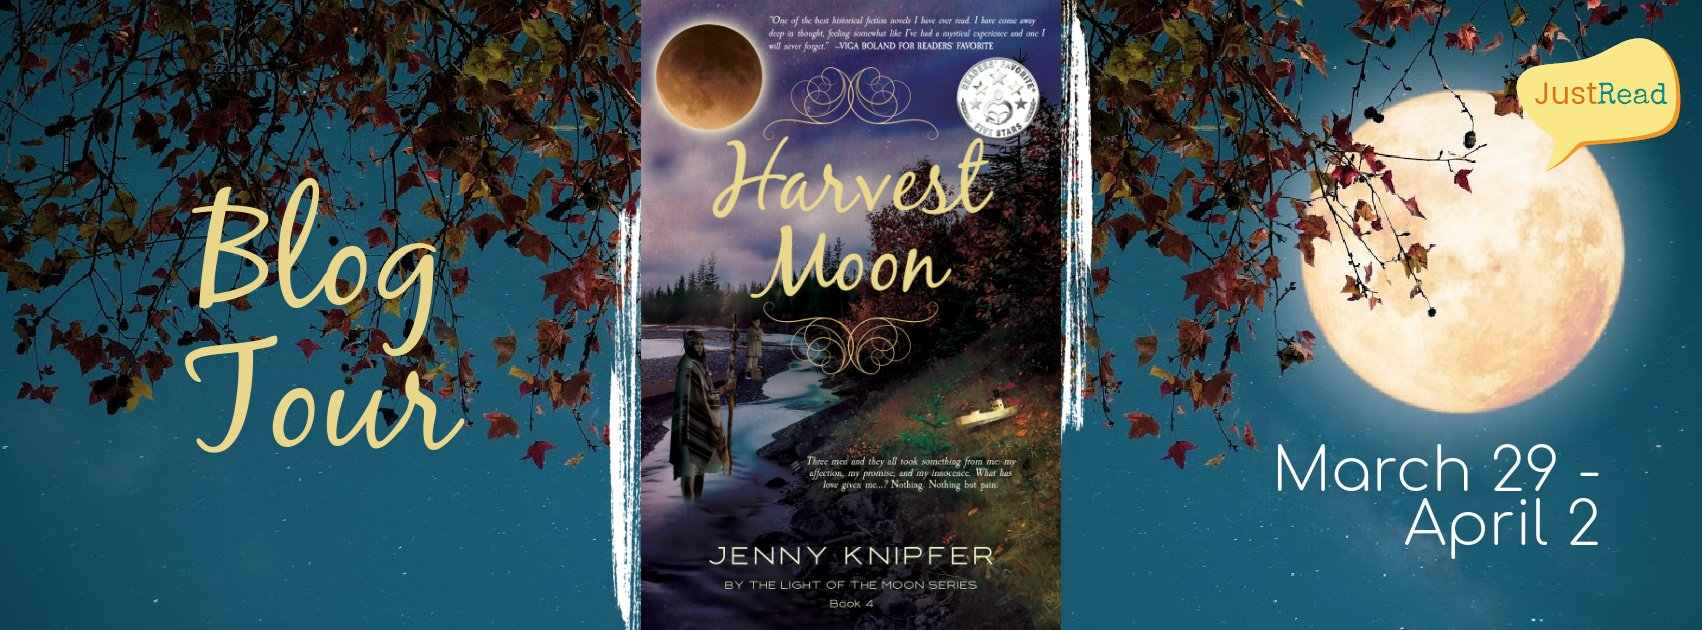 Harvest Moon JustRead Blog Tour